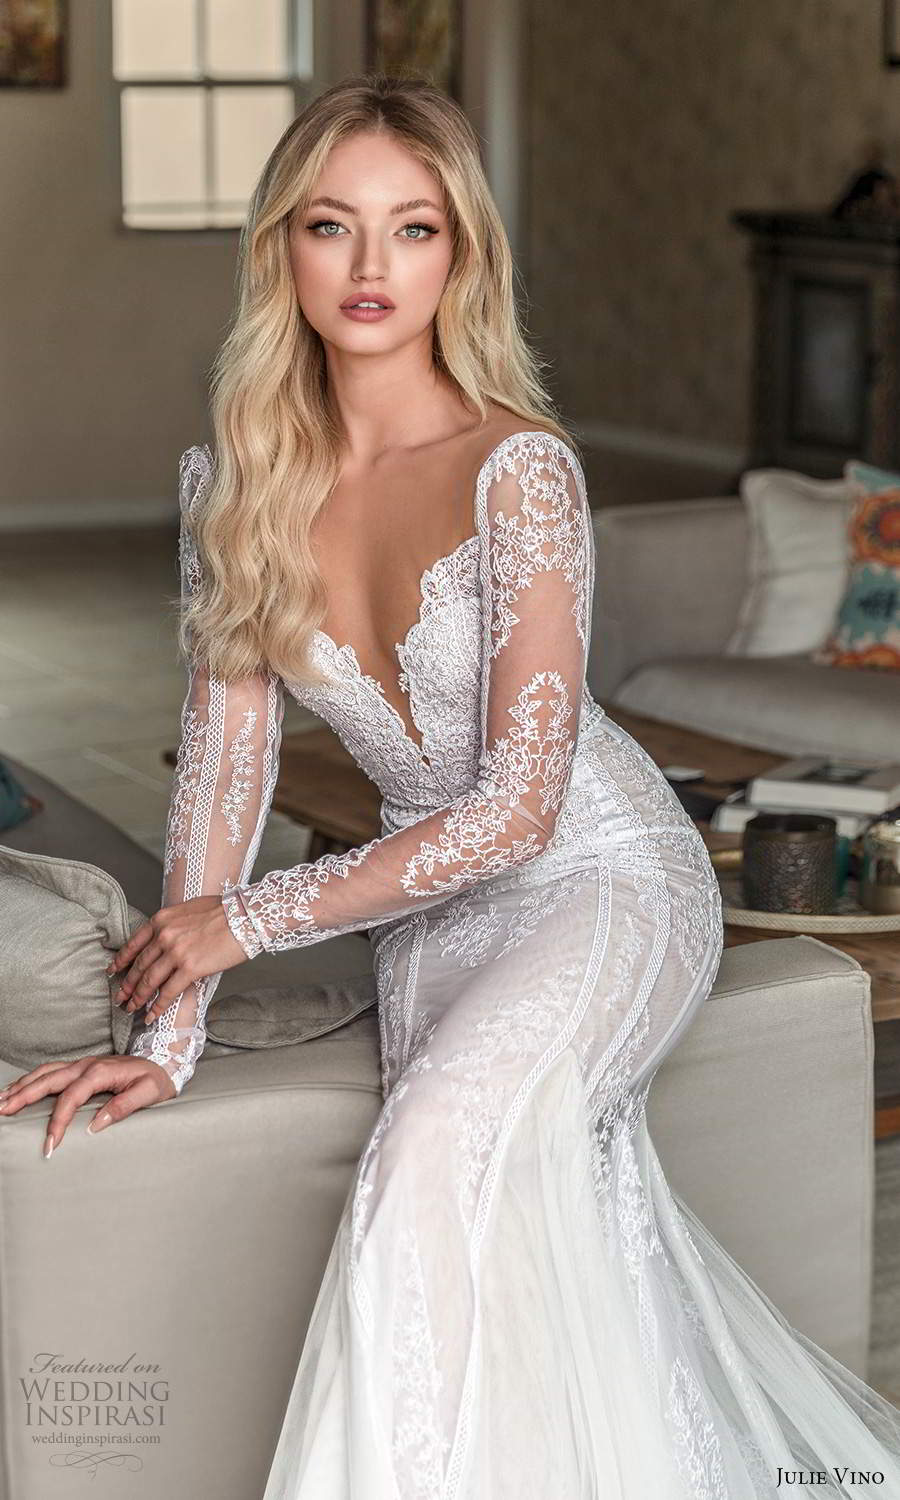 julie vino 2021 romanzo bridal sheer long sleeves v neckline fully embellished lace fit flare mermaid wedidng dress chapel train (4) zv